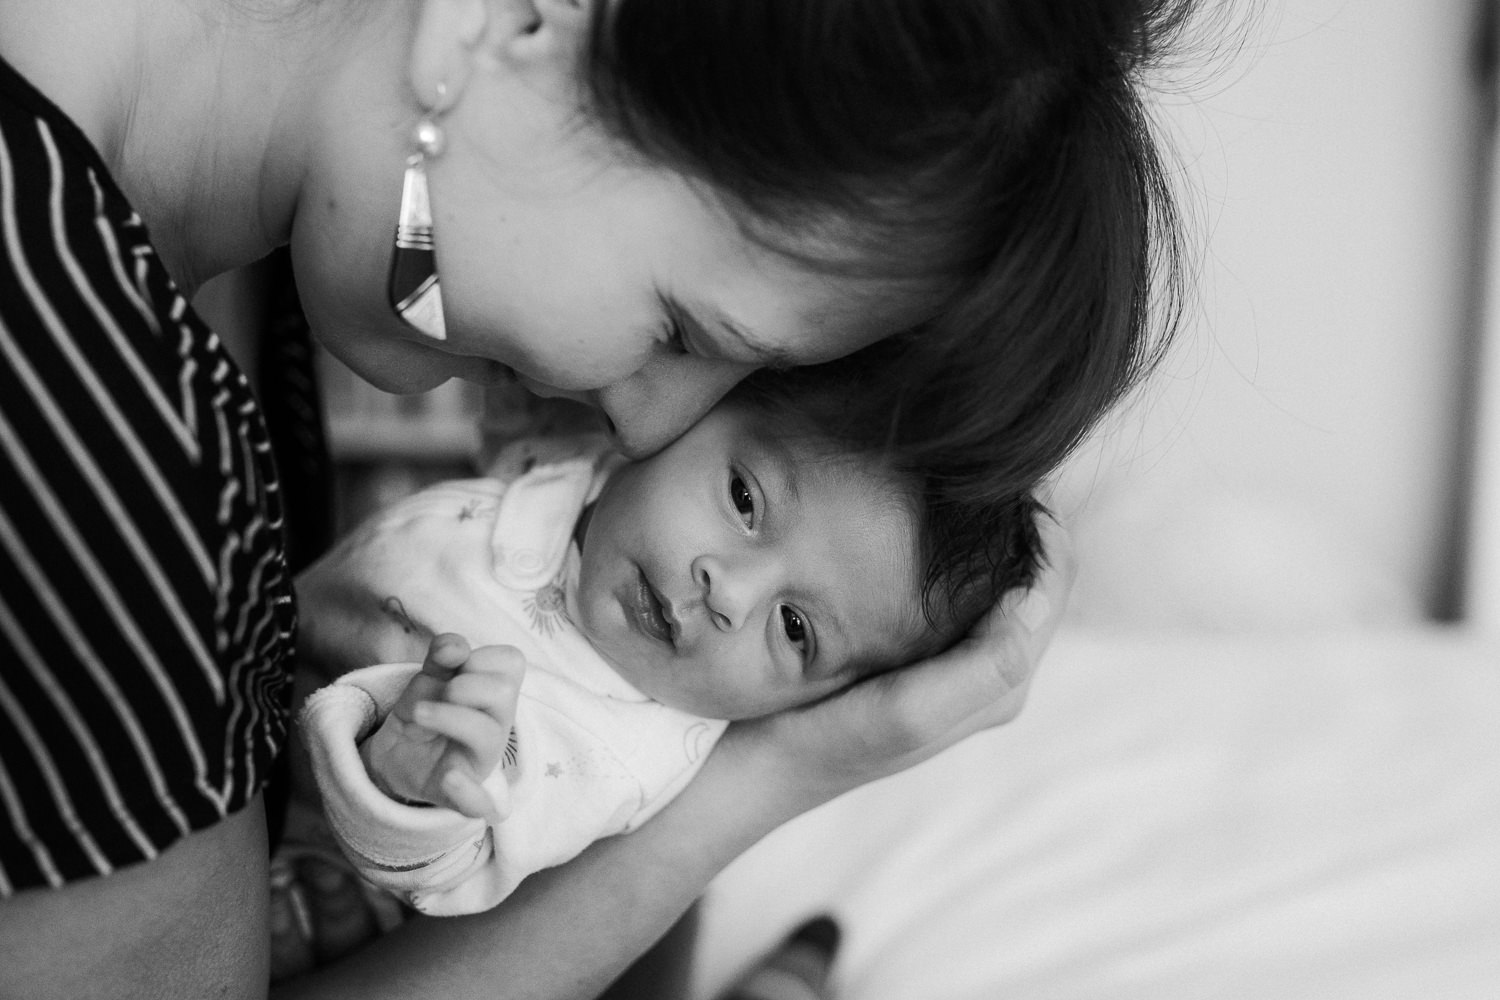 first time mom snuggling 2 week old baby daughter, face to face, baby looking at camera - Newmarket Lifestyle Photography